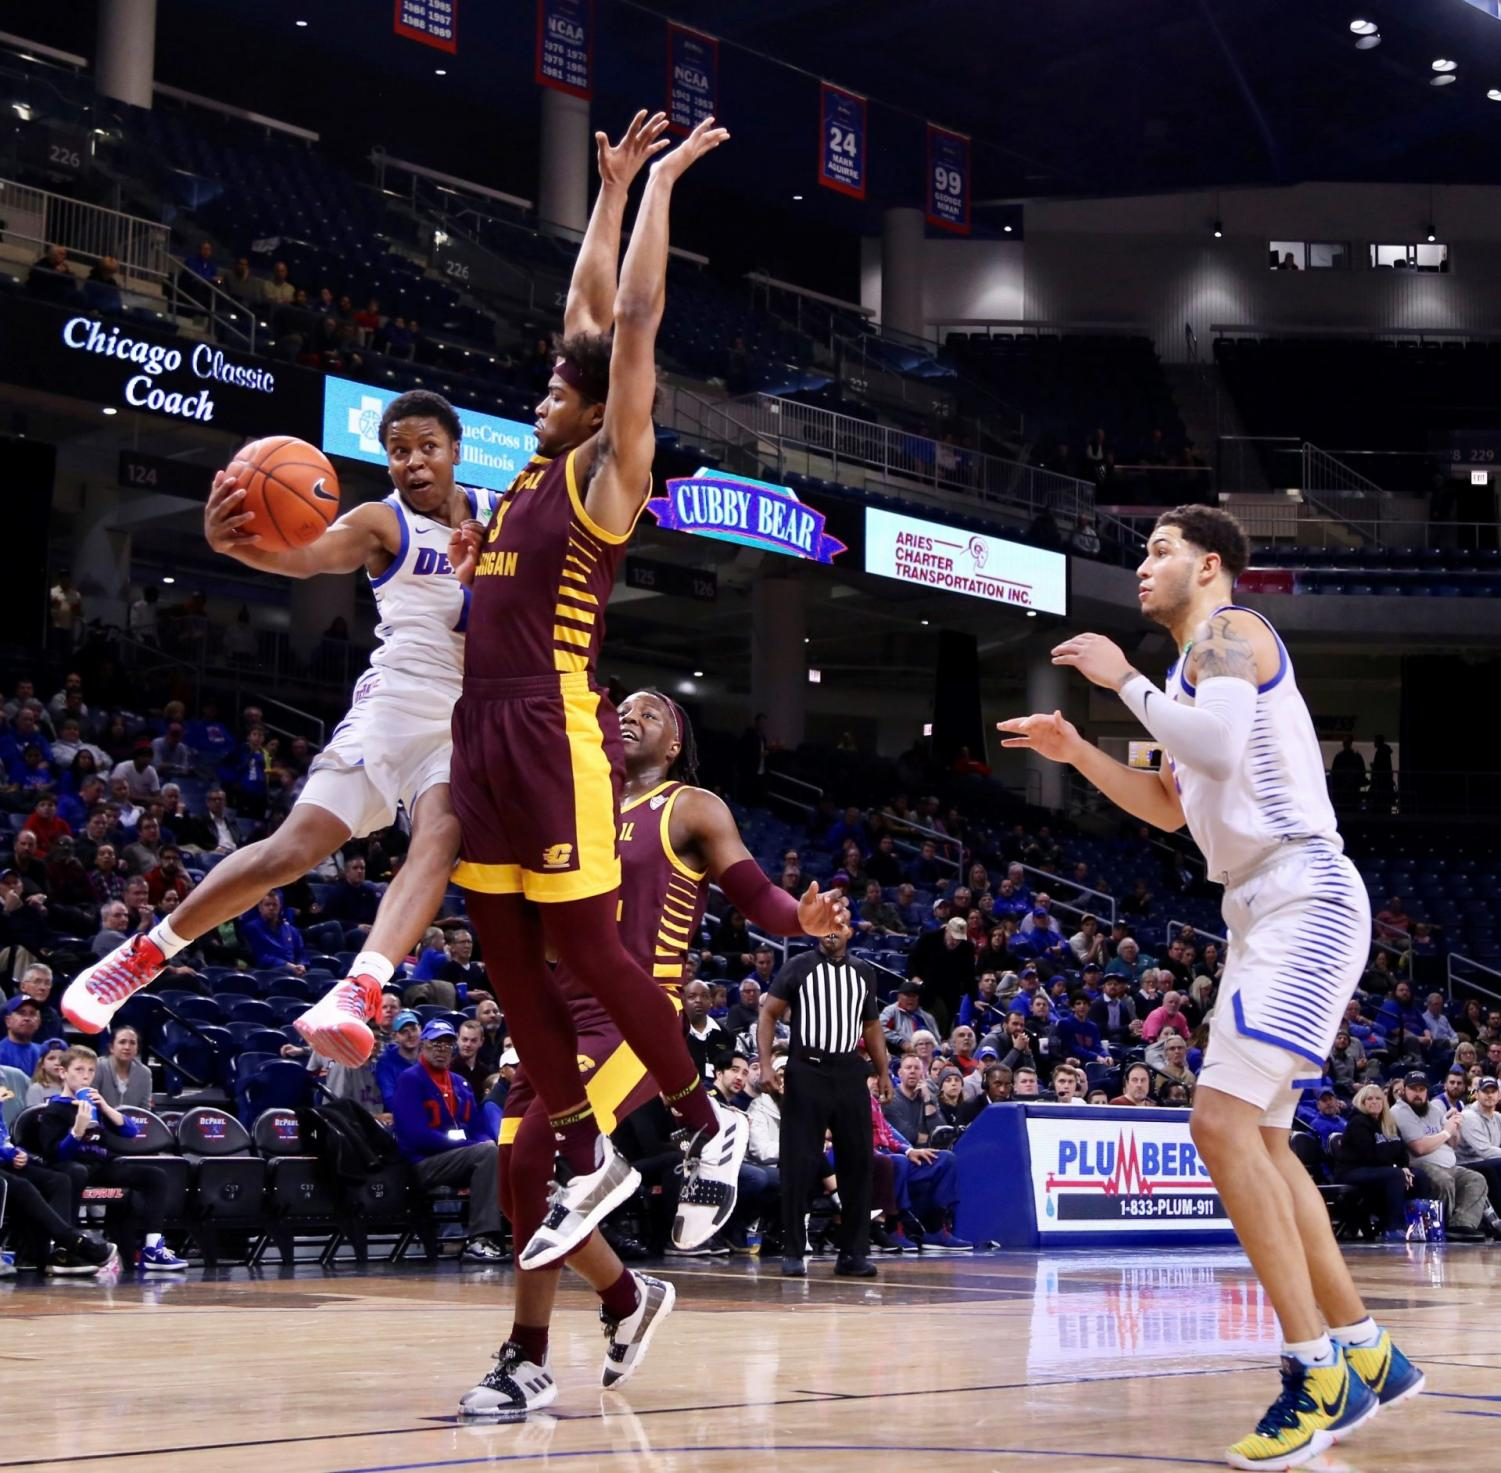 DePaul junior guard Charlie Moore goes for a pass to fellow junior Jaylen Butz against Central Michigan on Nov. 26 at Wintrust Arena.